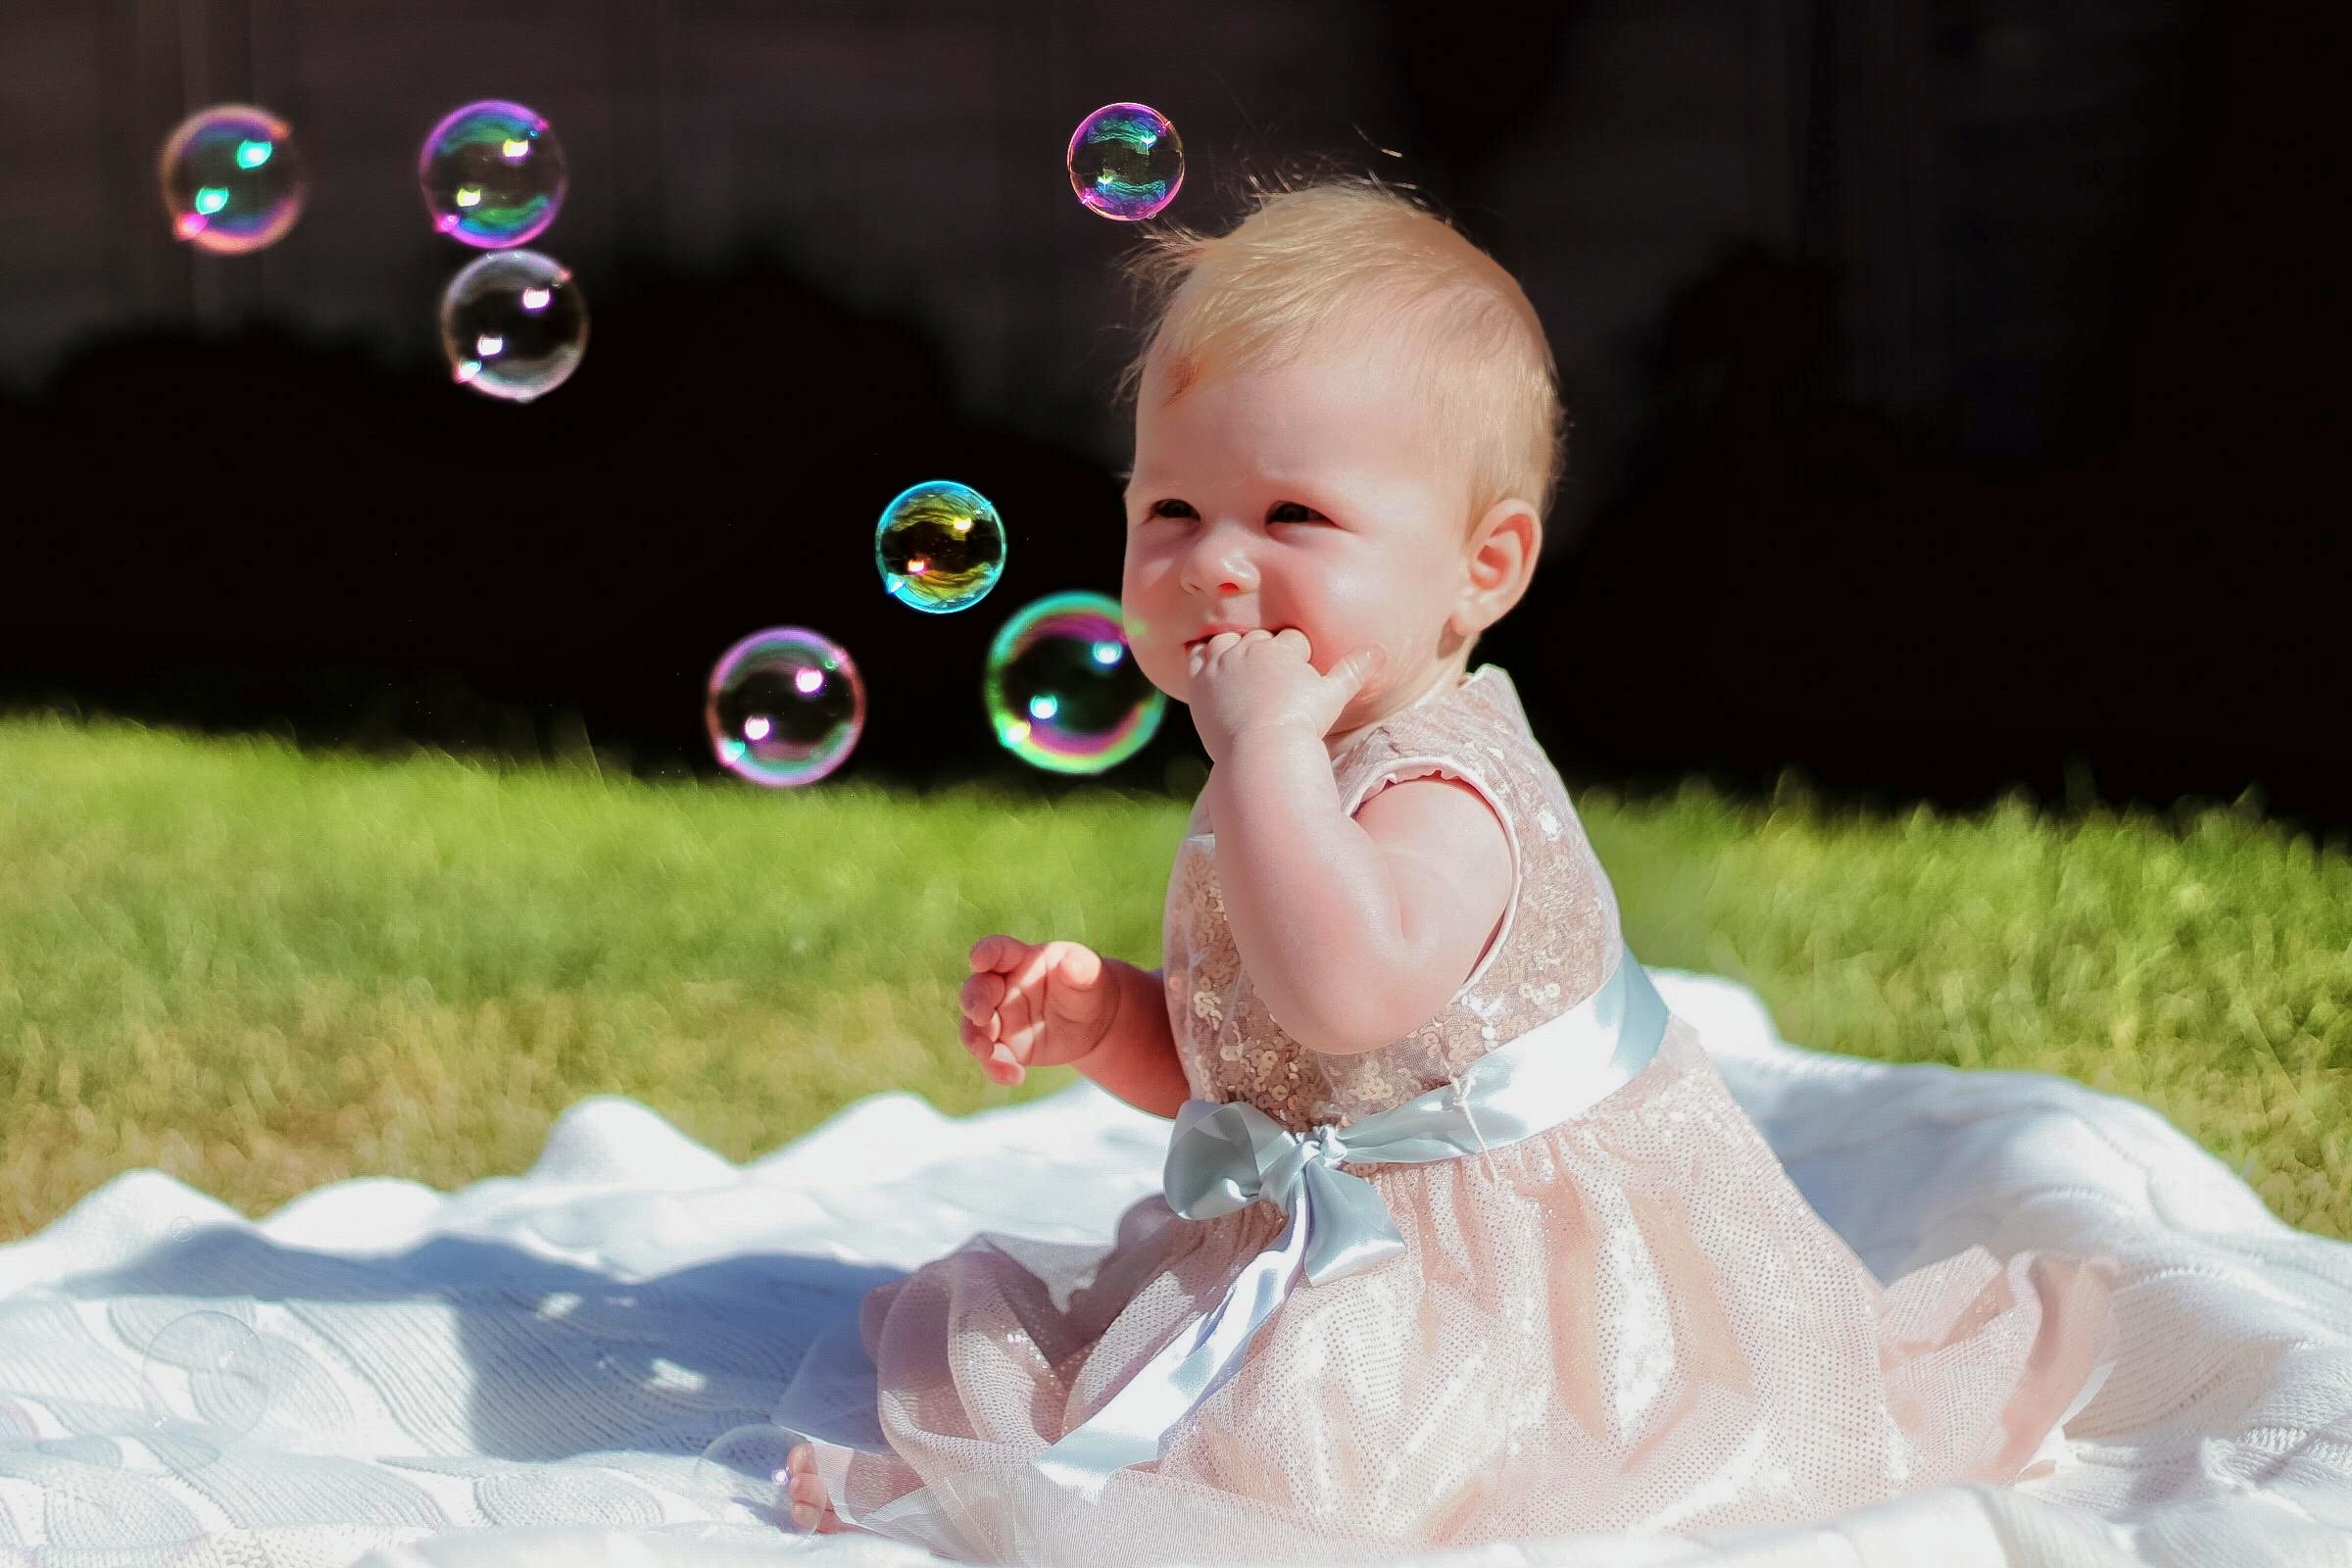 Baby girl sitting on a mat wearing a pink dress with a hand in her mouth watching bubbles